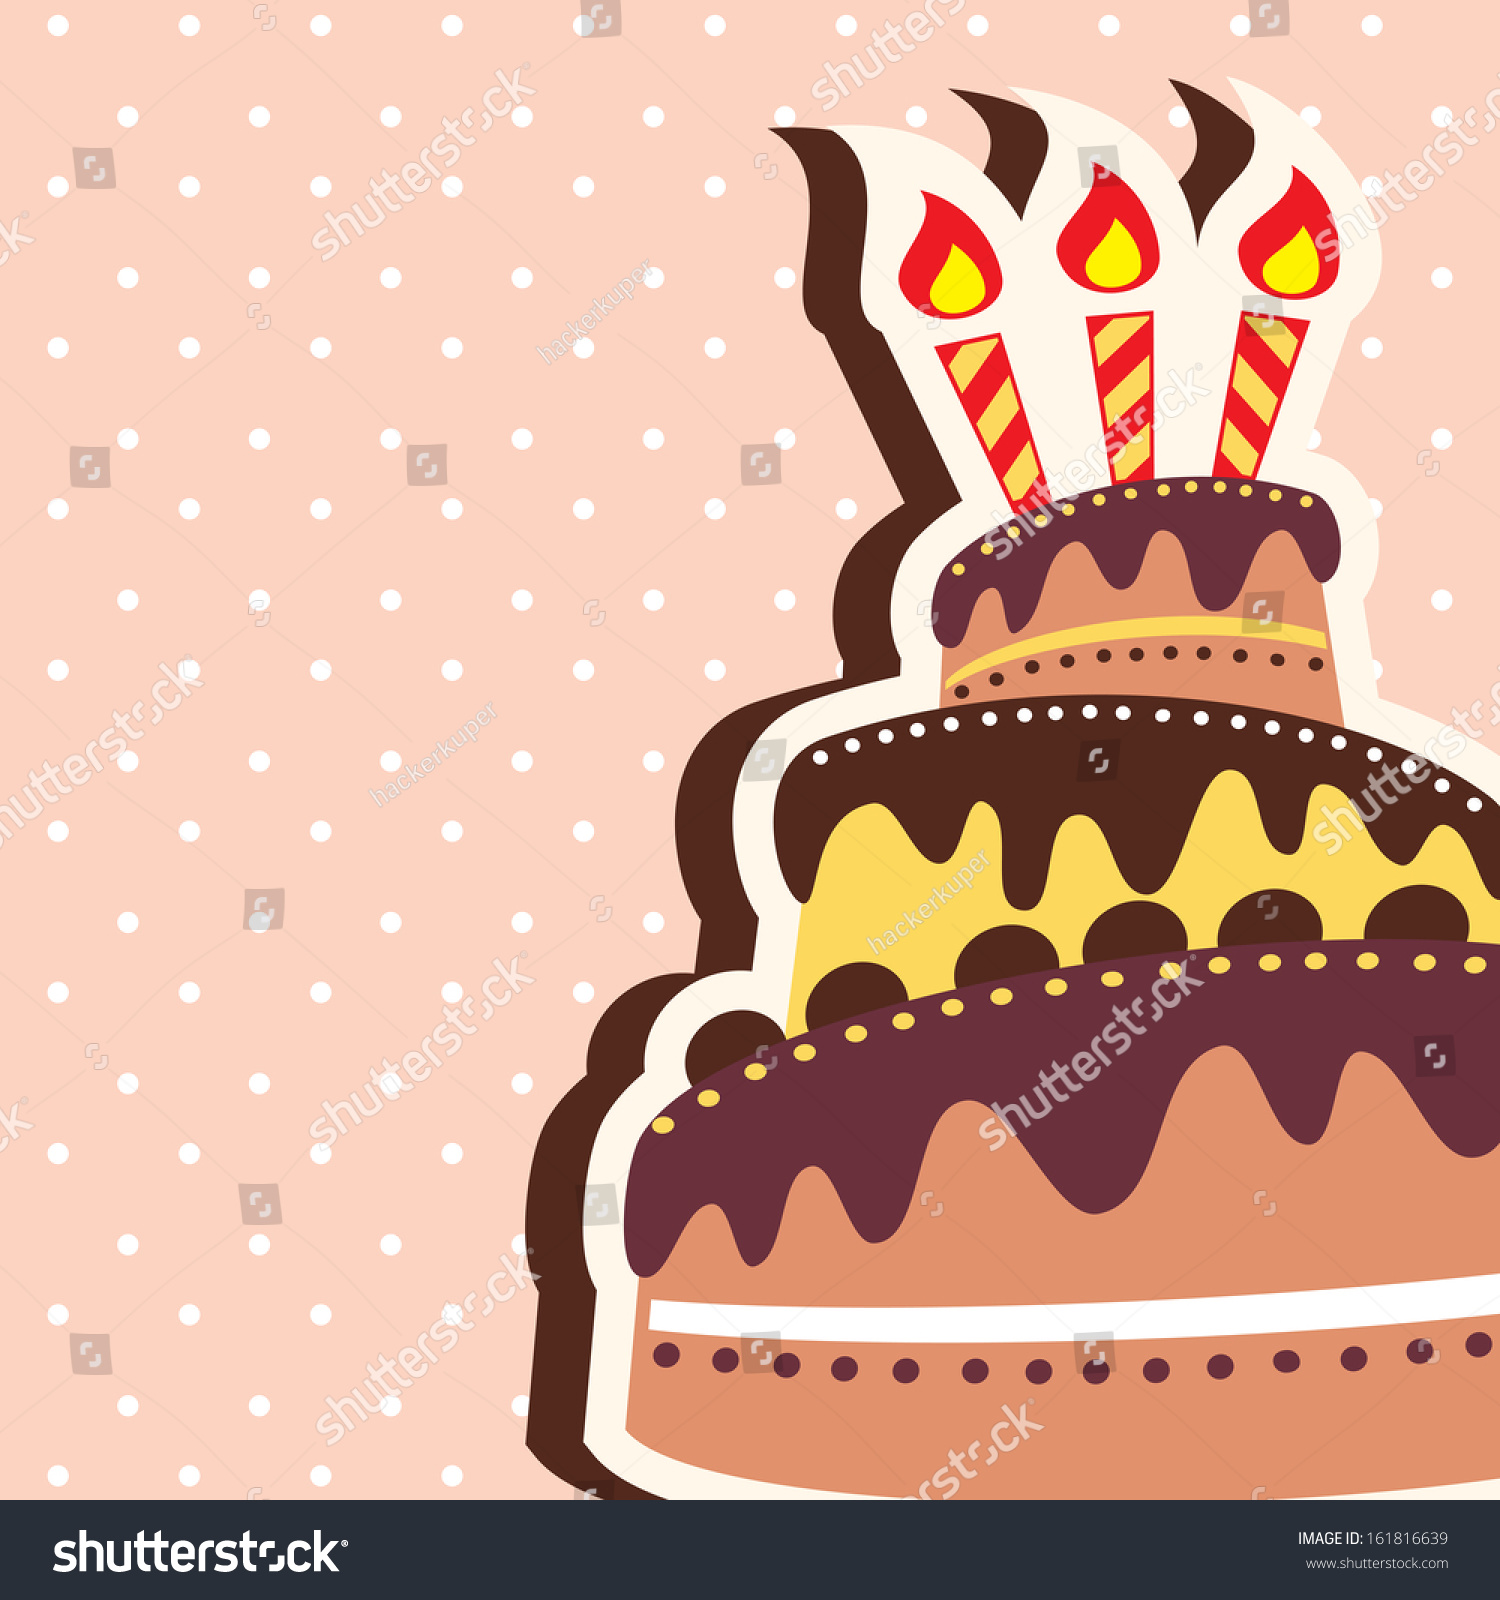 Happy Birthday Chocolate Cake Card Background Illustration – Birthday Cake Card Template